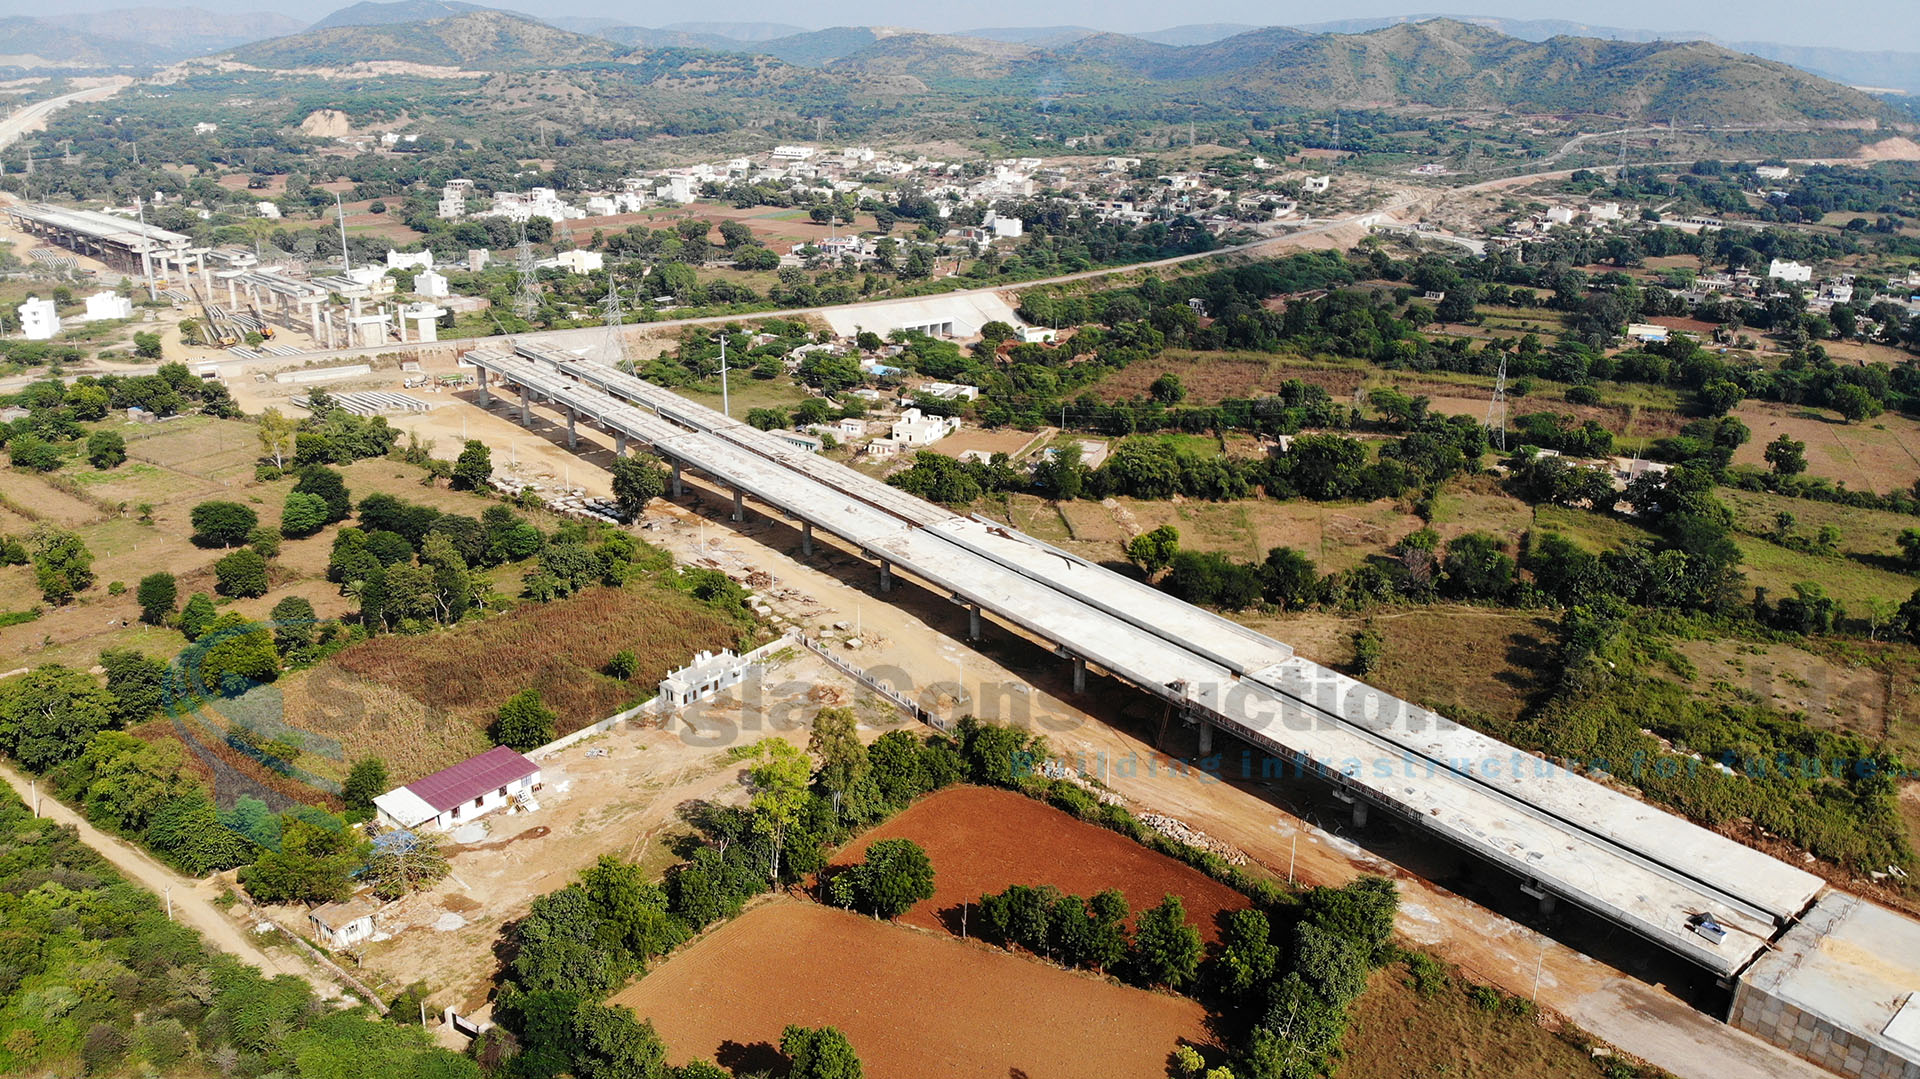 Structure works on 23.883 Km Long, 6 Lane Udaipur Bypass under NHDP in Rajasthan